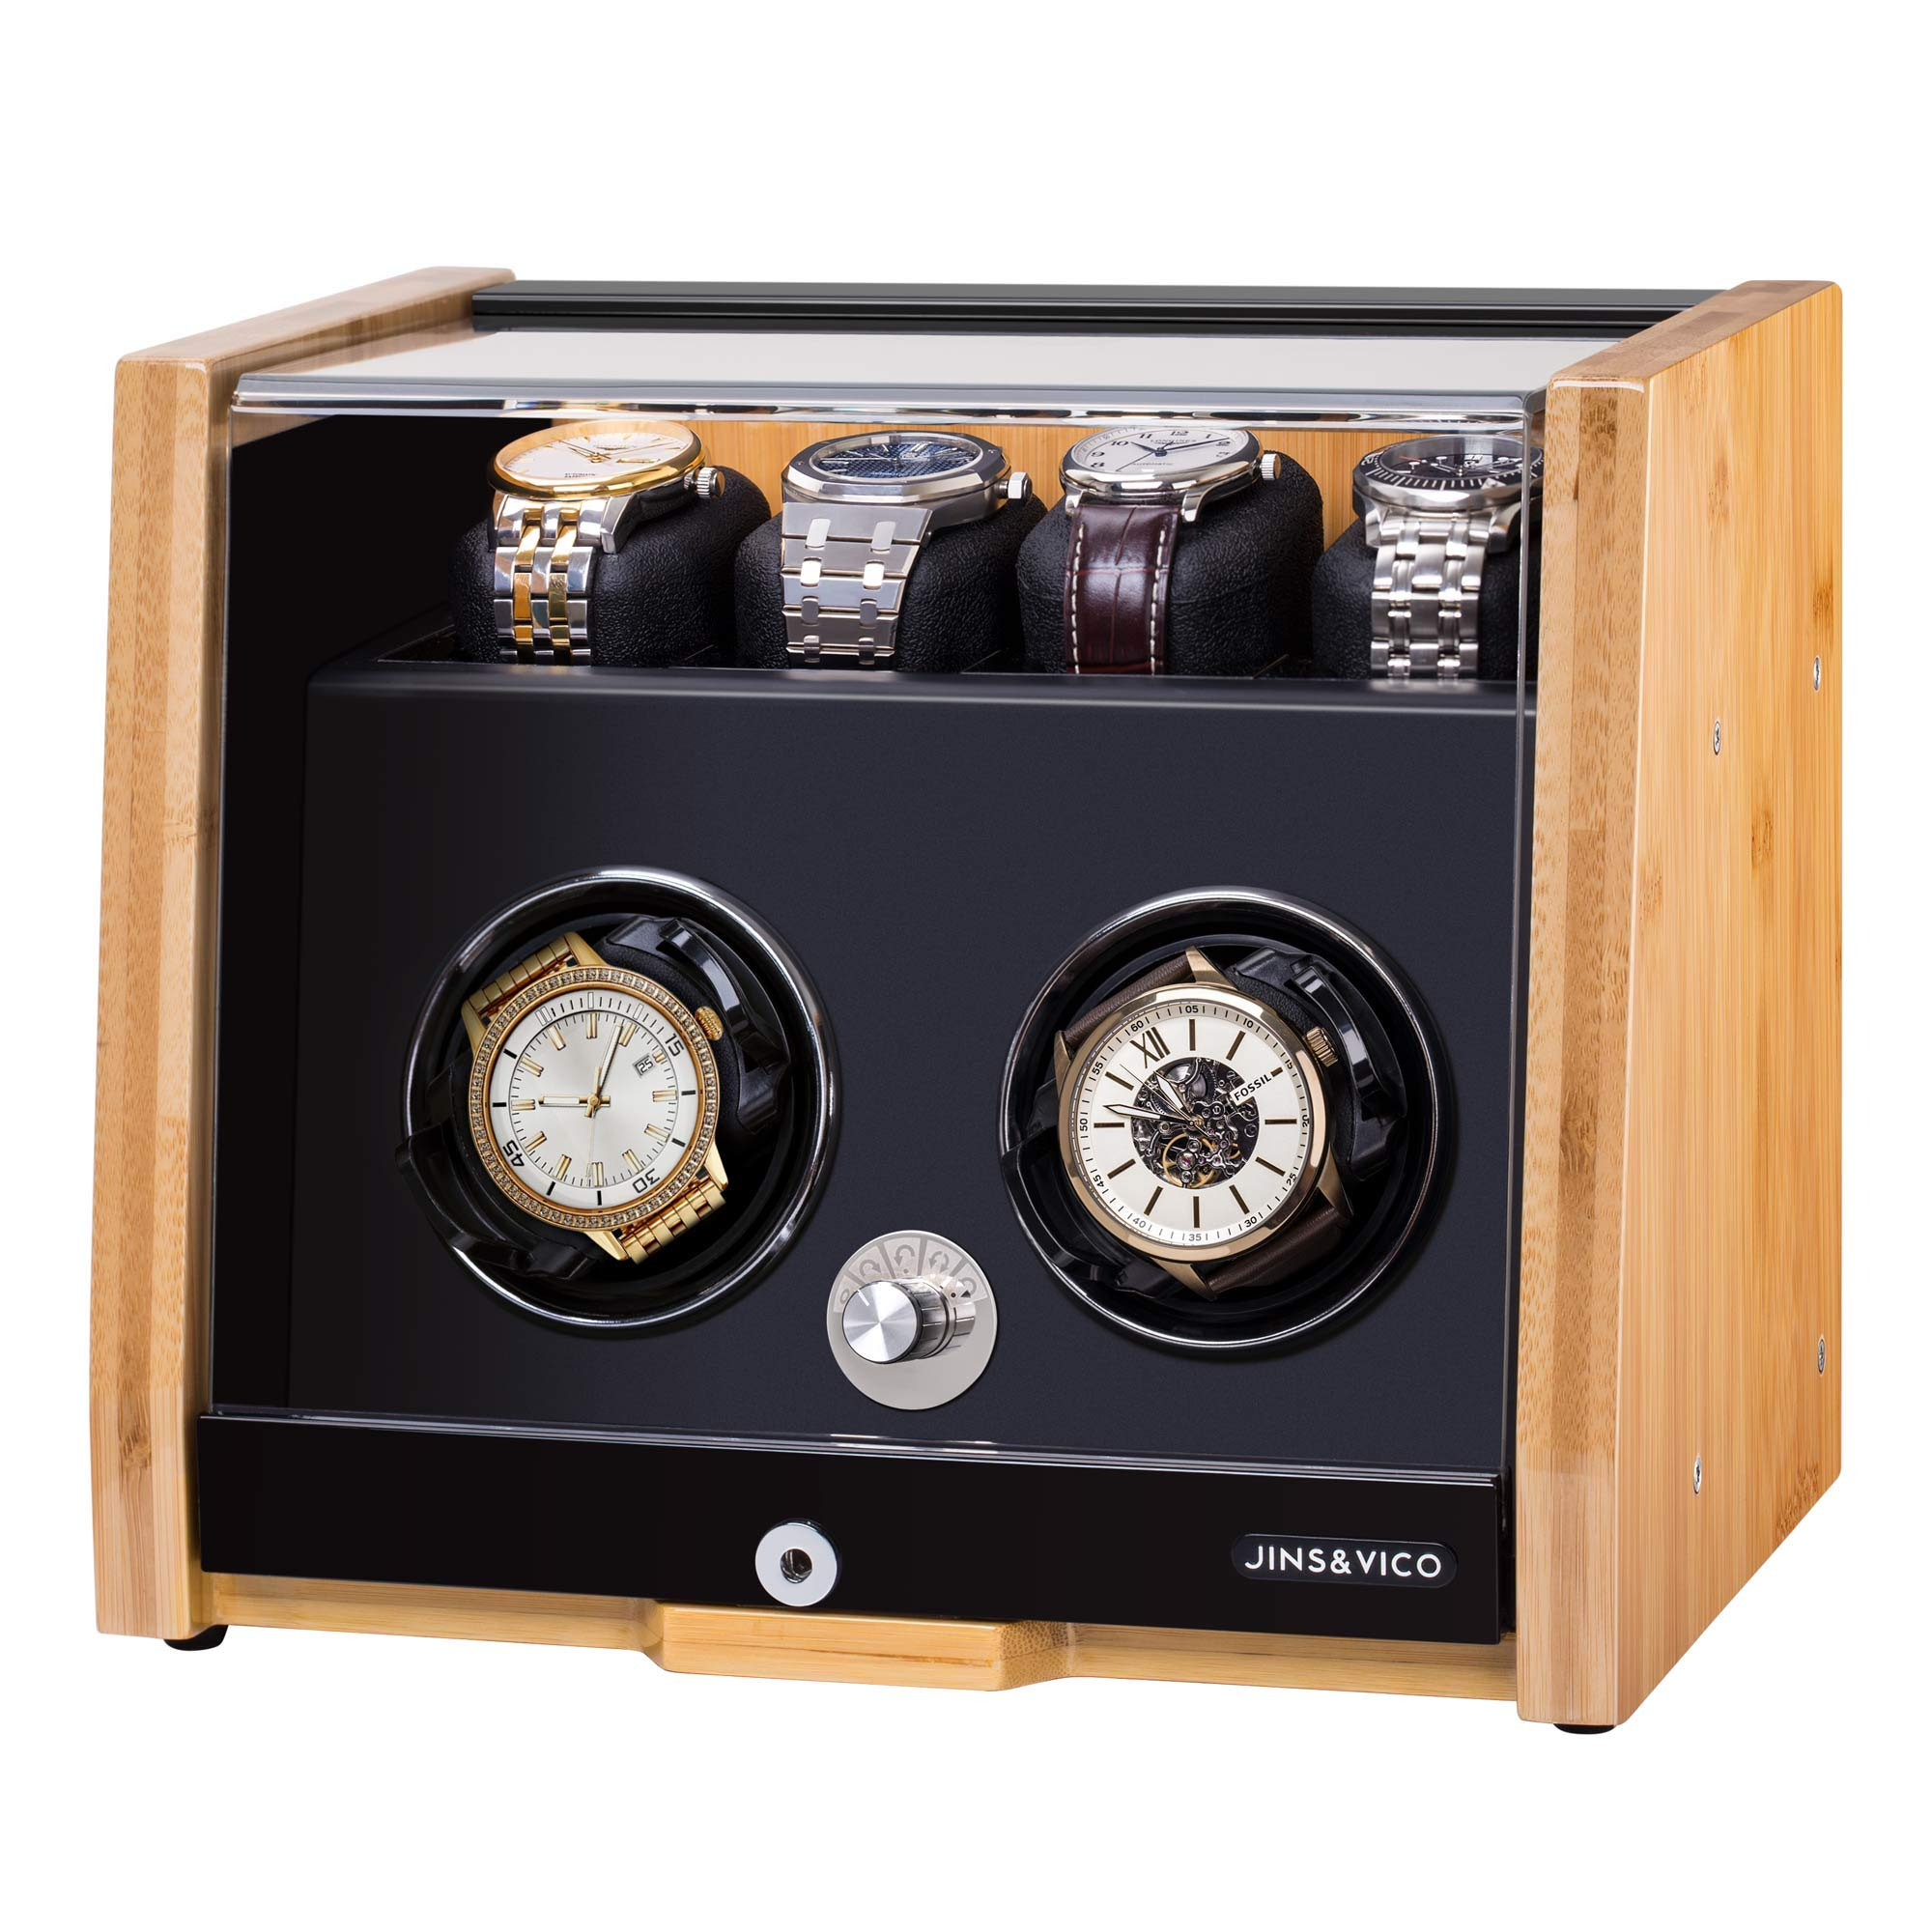 Watch Winder Made of Premium Natural Bamboo Shell for 6 Automatic Watches with High-gloss Craftsmanship, 4 Setting Modes and Super Quiet Motor, Built-in Lock by JINS&VICO